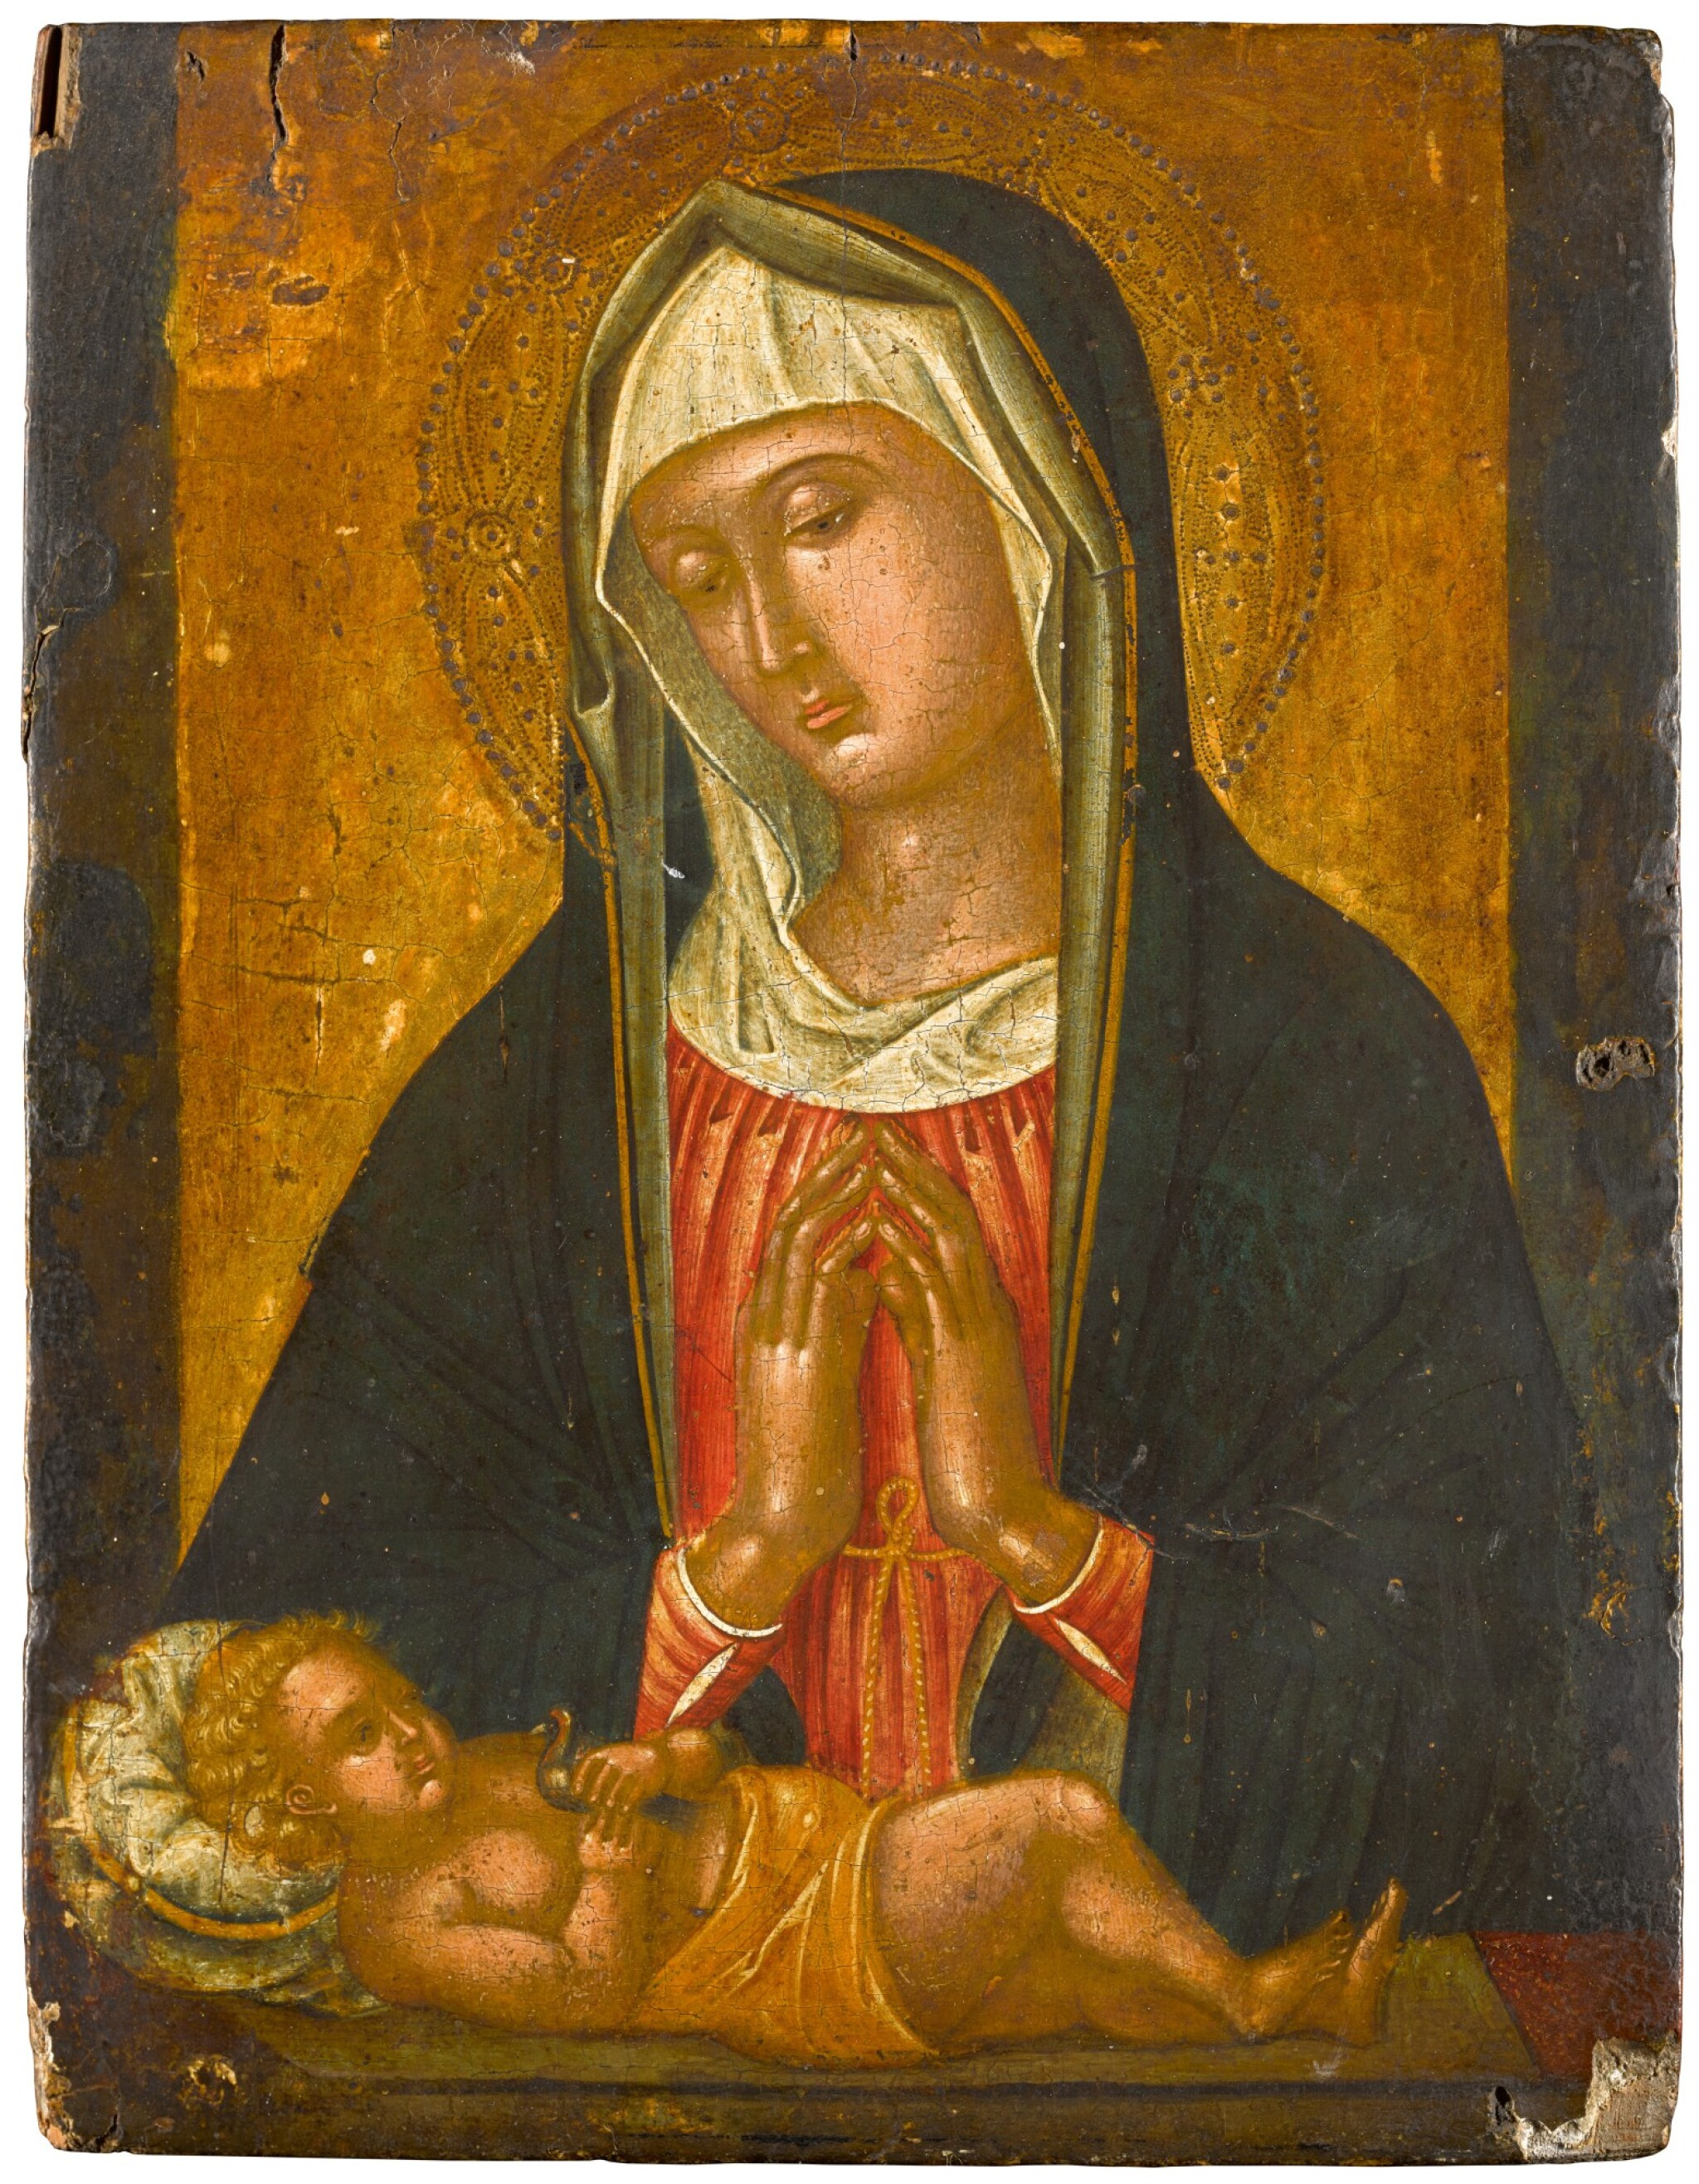 View 1 of Lot 102. The Madonna and Child.